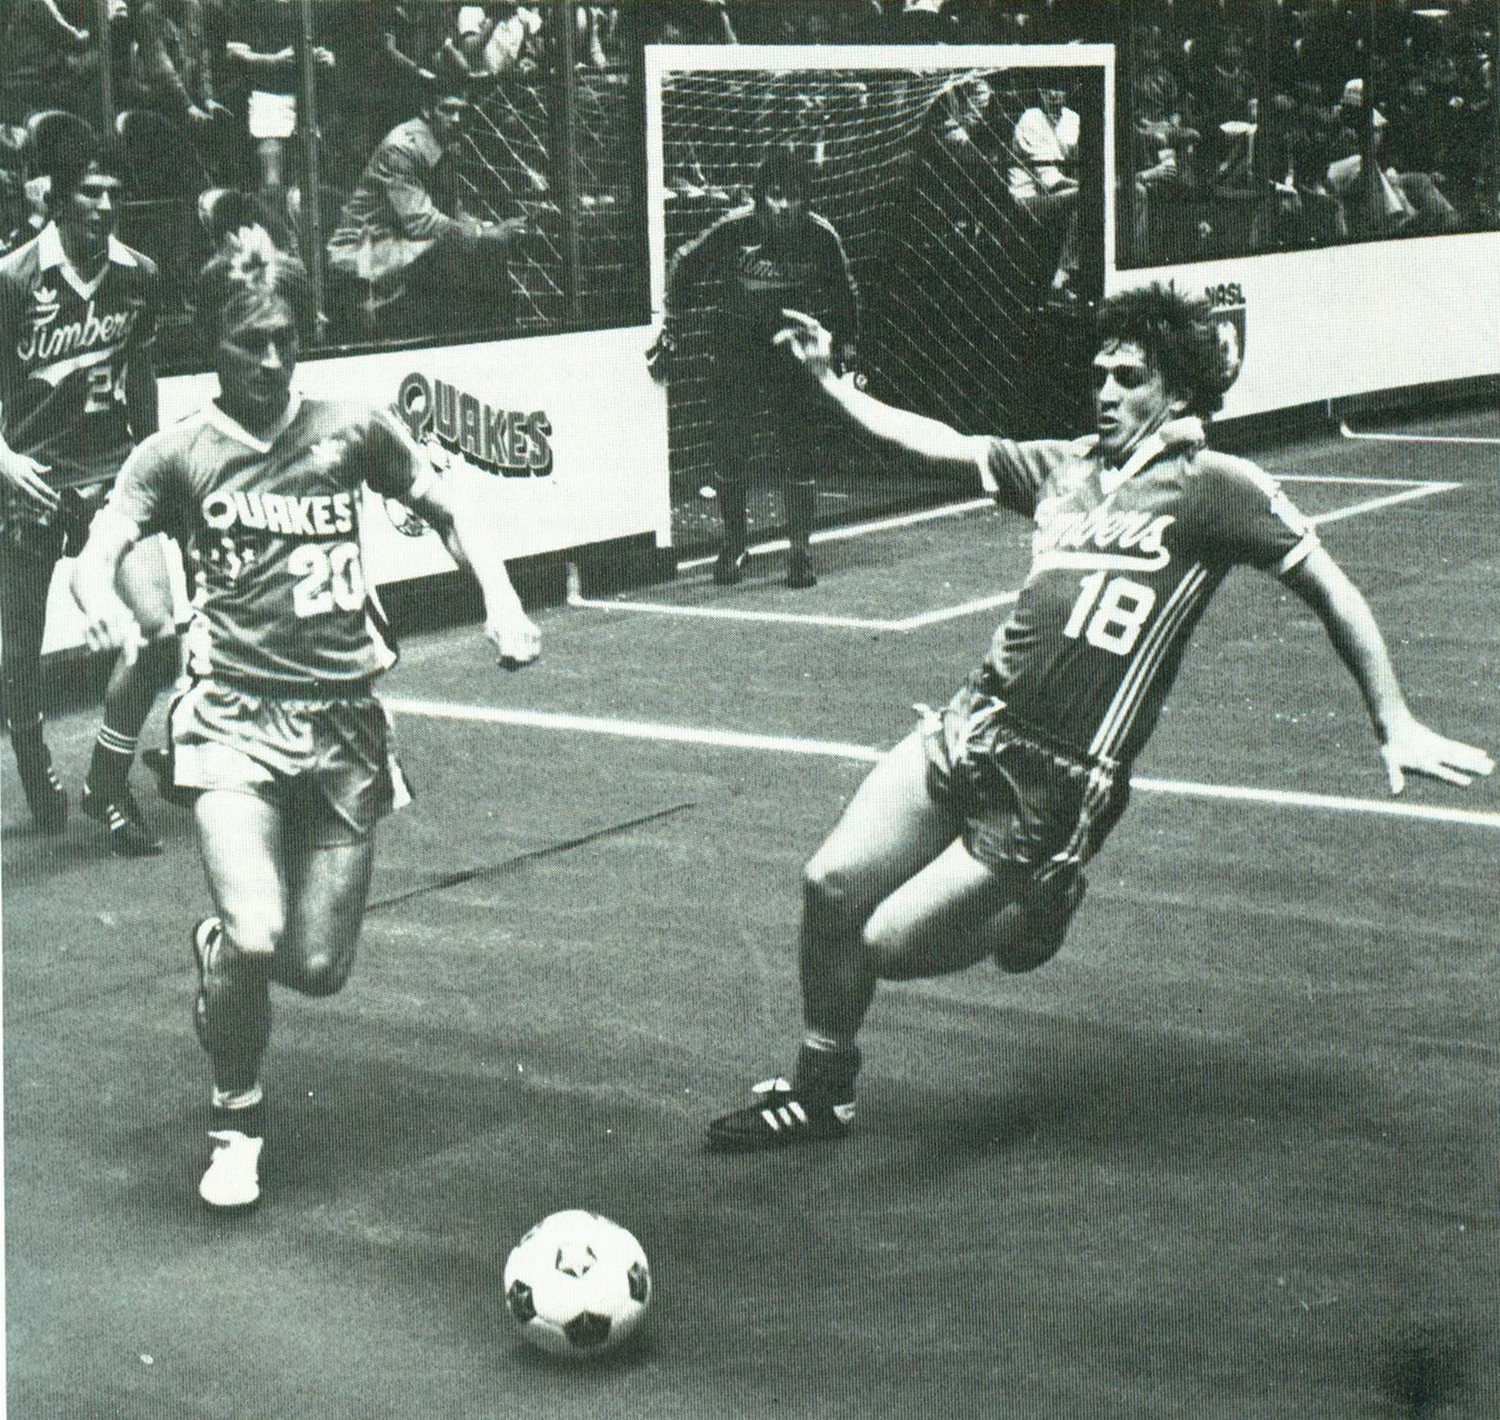 Earthquakes 81-82 Road Gary Etherington, Timbers.jpg